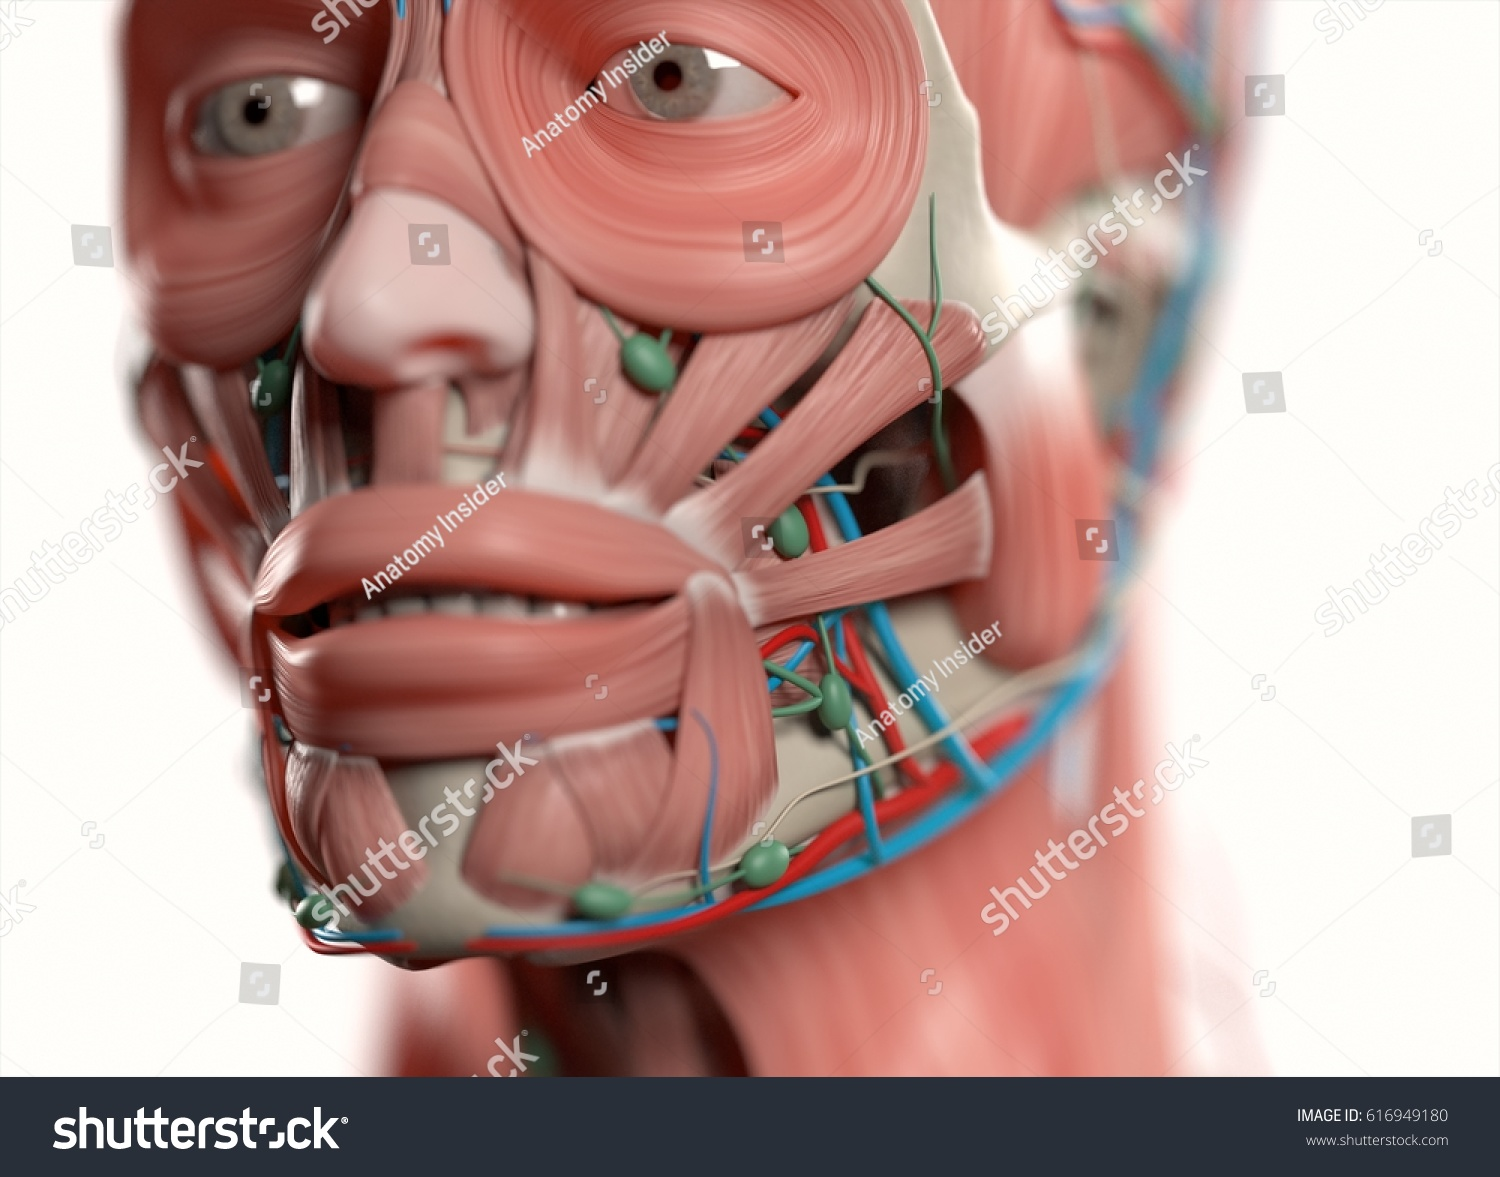 Human Anatomy Face Jaweyes Nose Muscular Stock Illustration ...